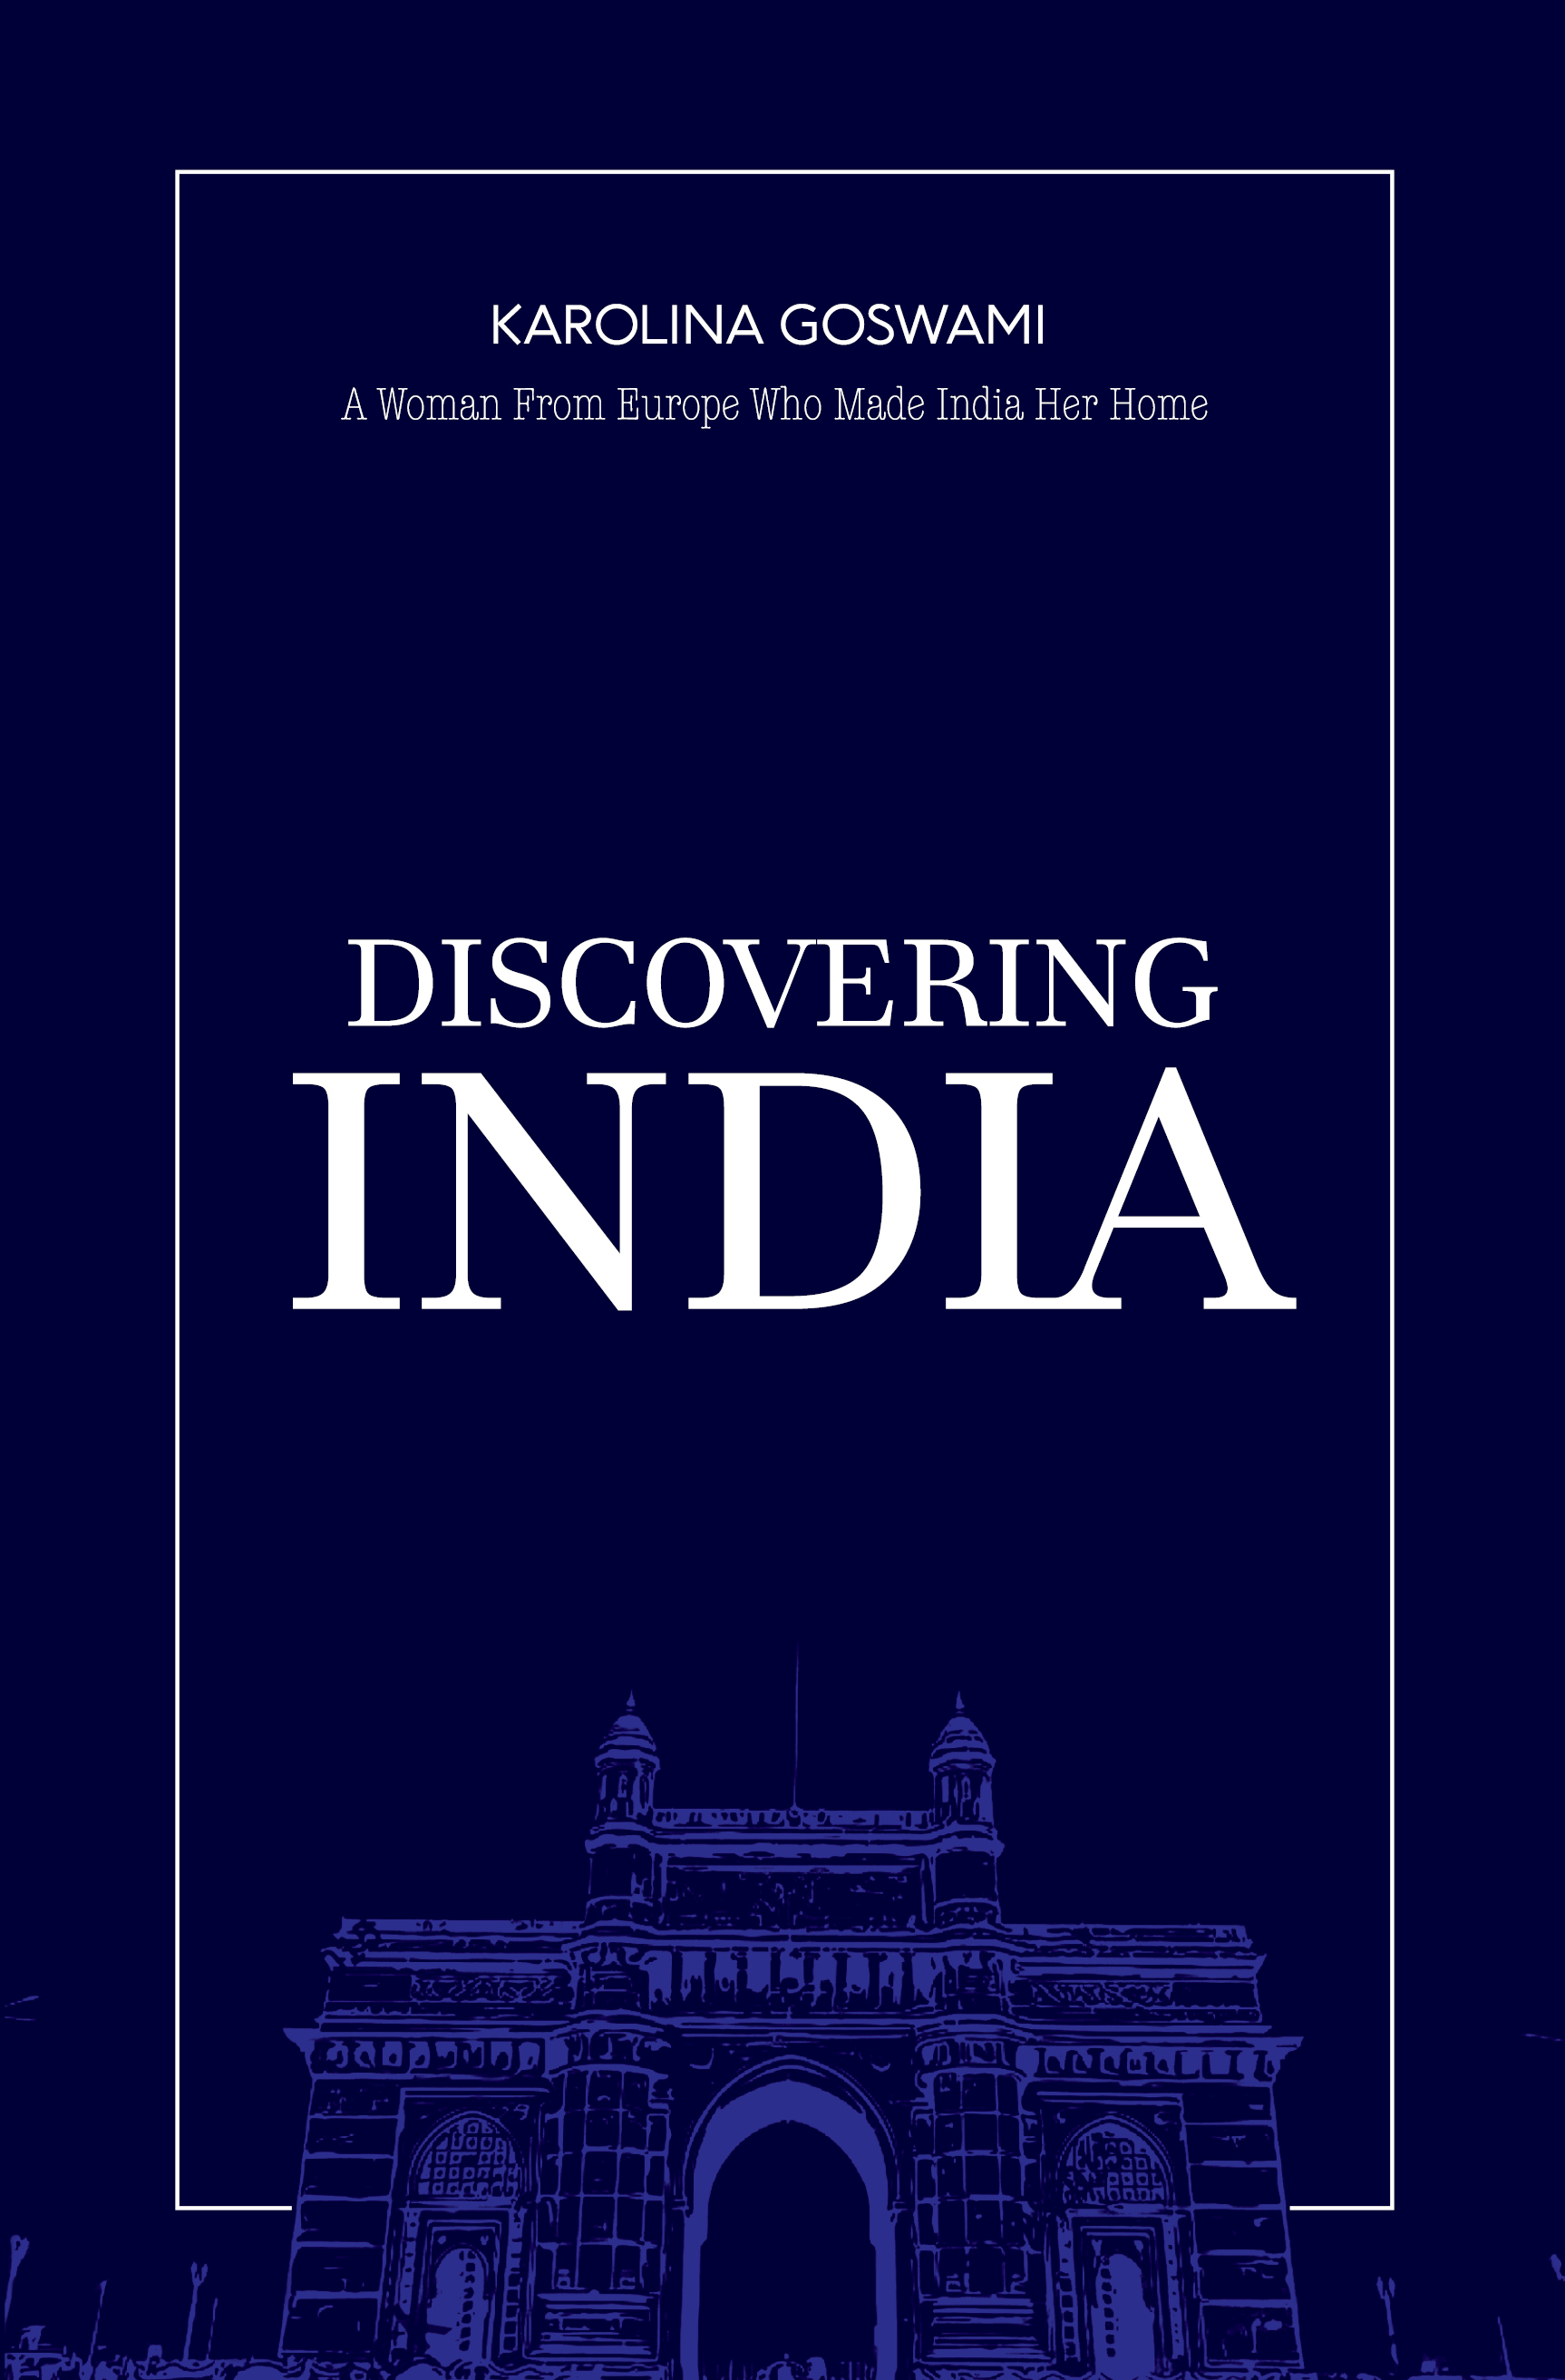 Discovering India by Karolina Goswami